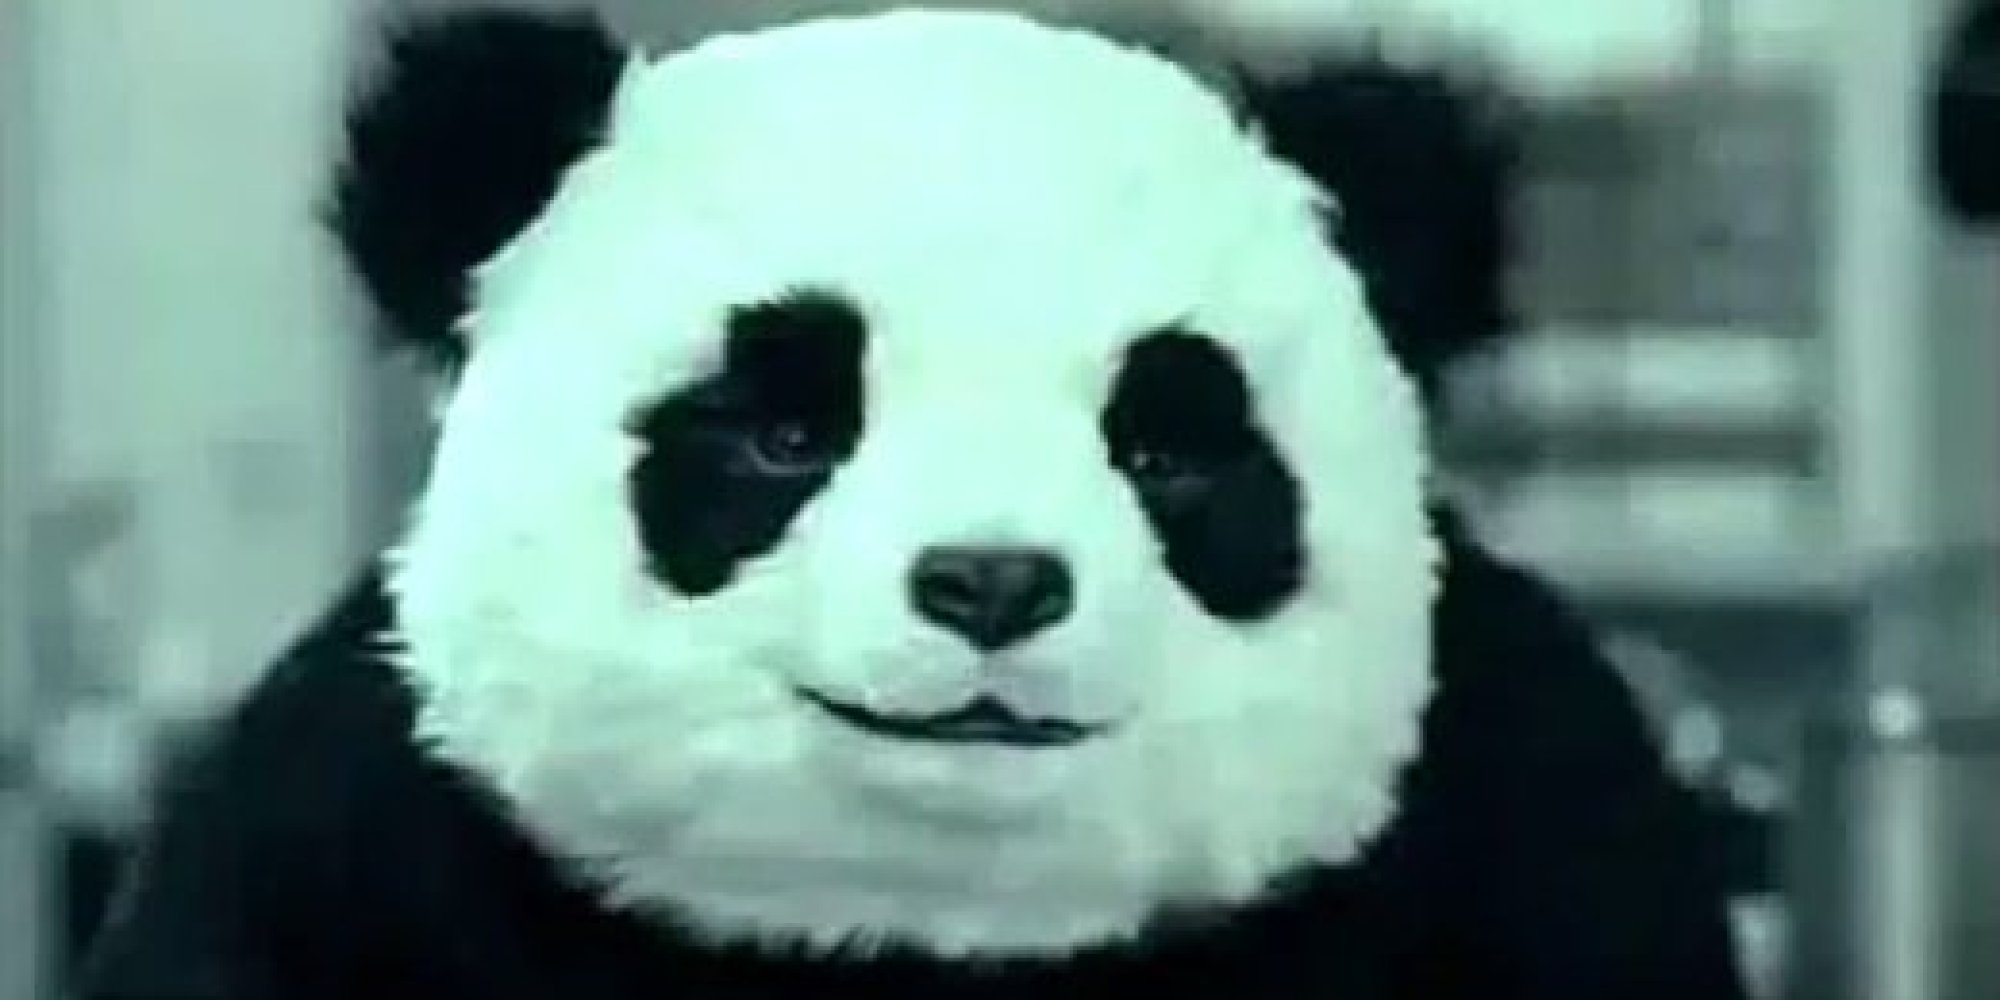 Panda Cheese Commercials Are Still Hilarious (VIDEO) | HuffPost